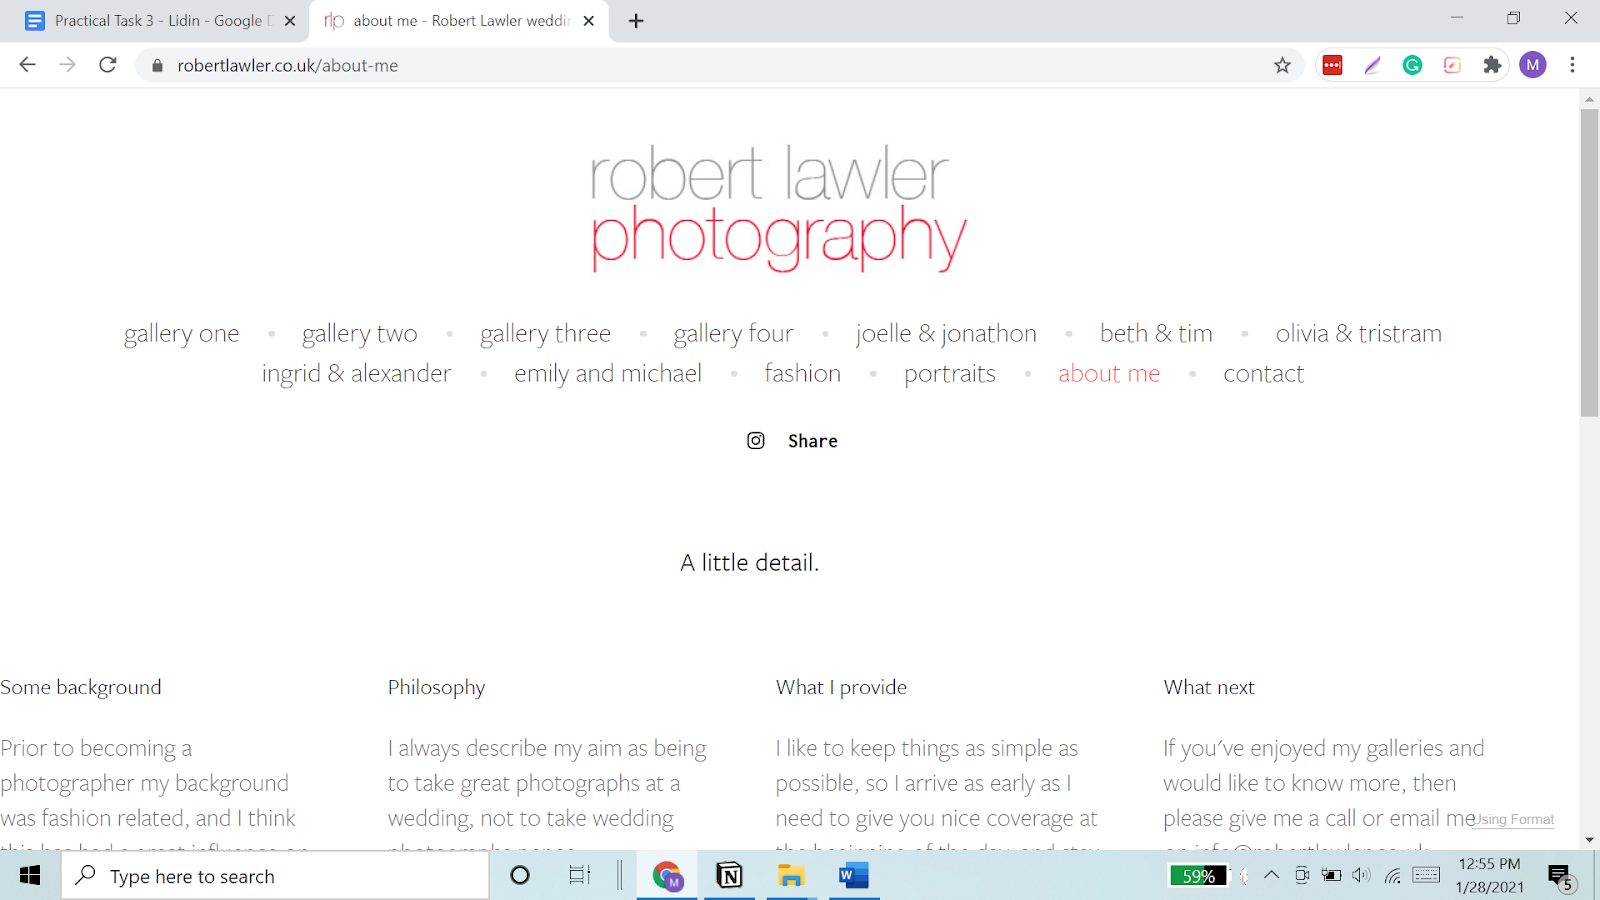 Photographer Robert Lawler, on his portfolio website, writes what he provides and his philosophy.